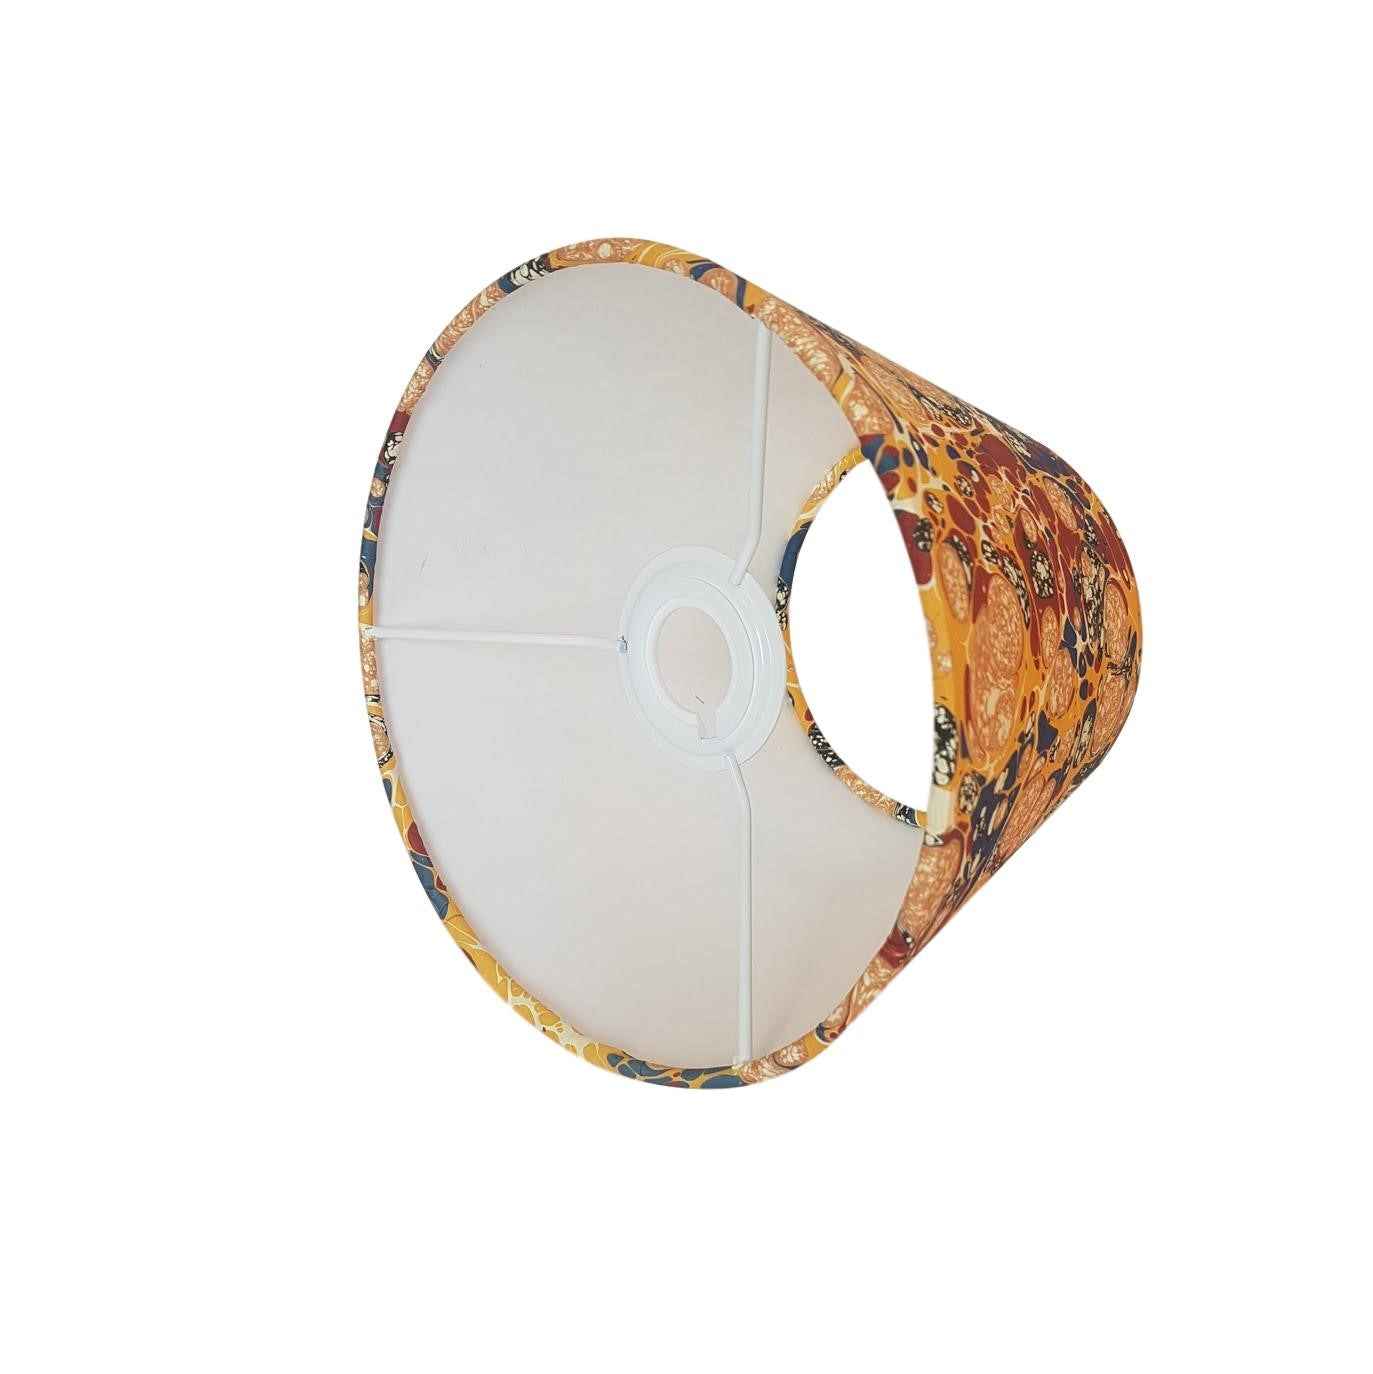 Munro and Kerr multicoloured marbled paper tapered empire lampshade